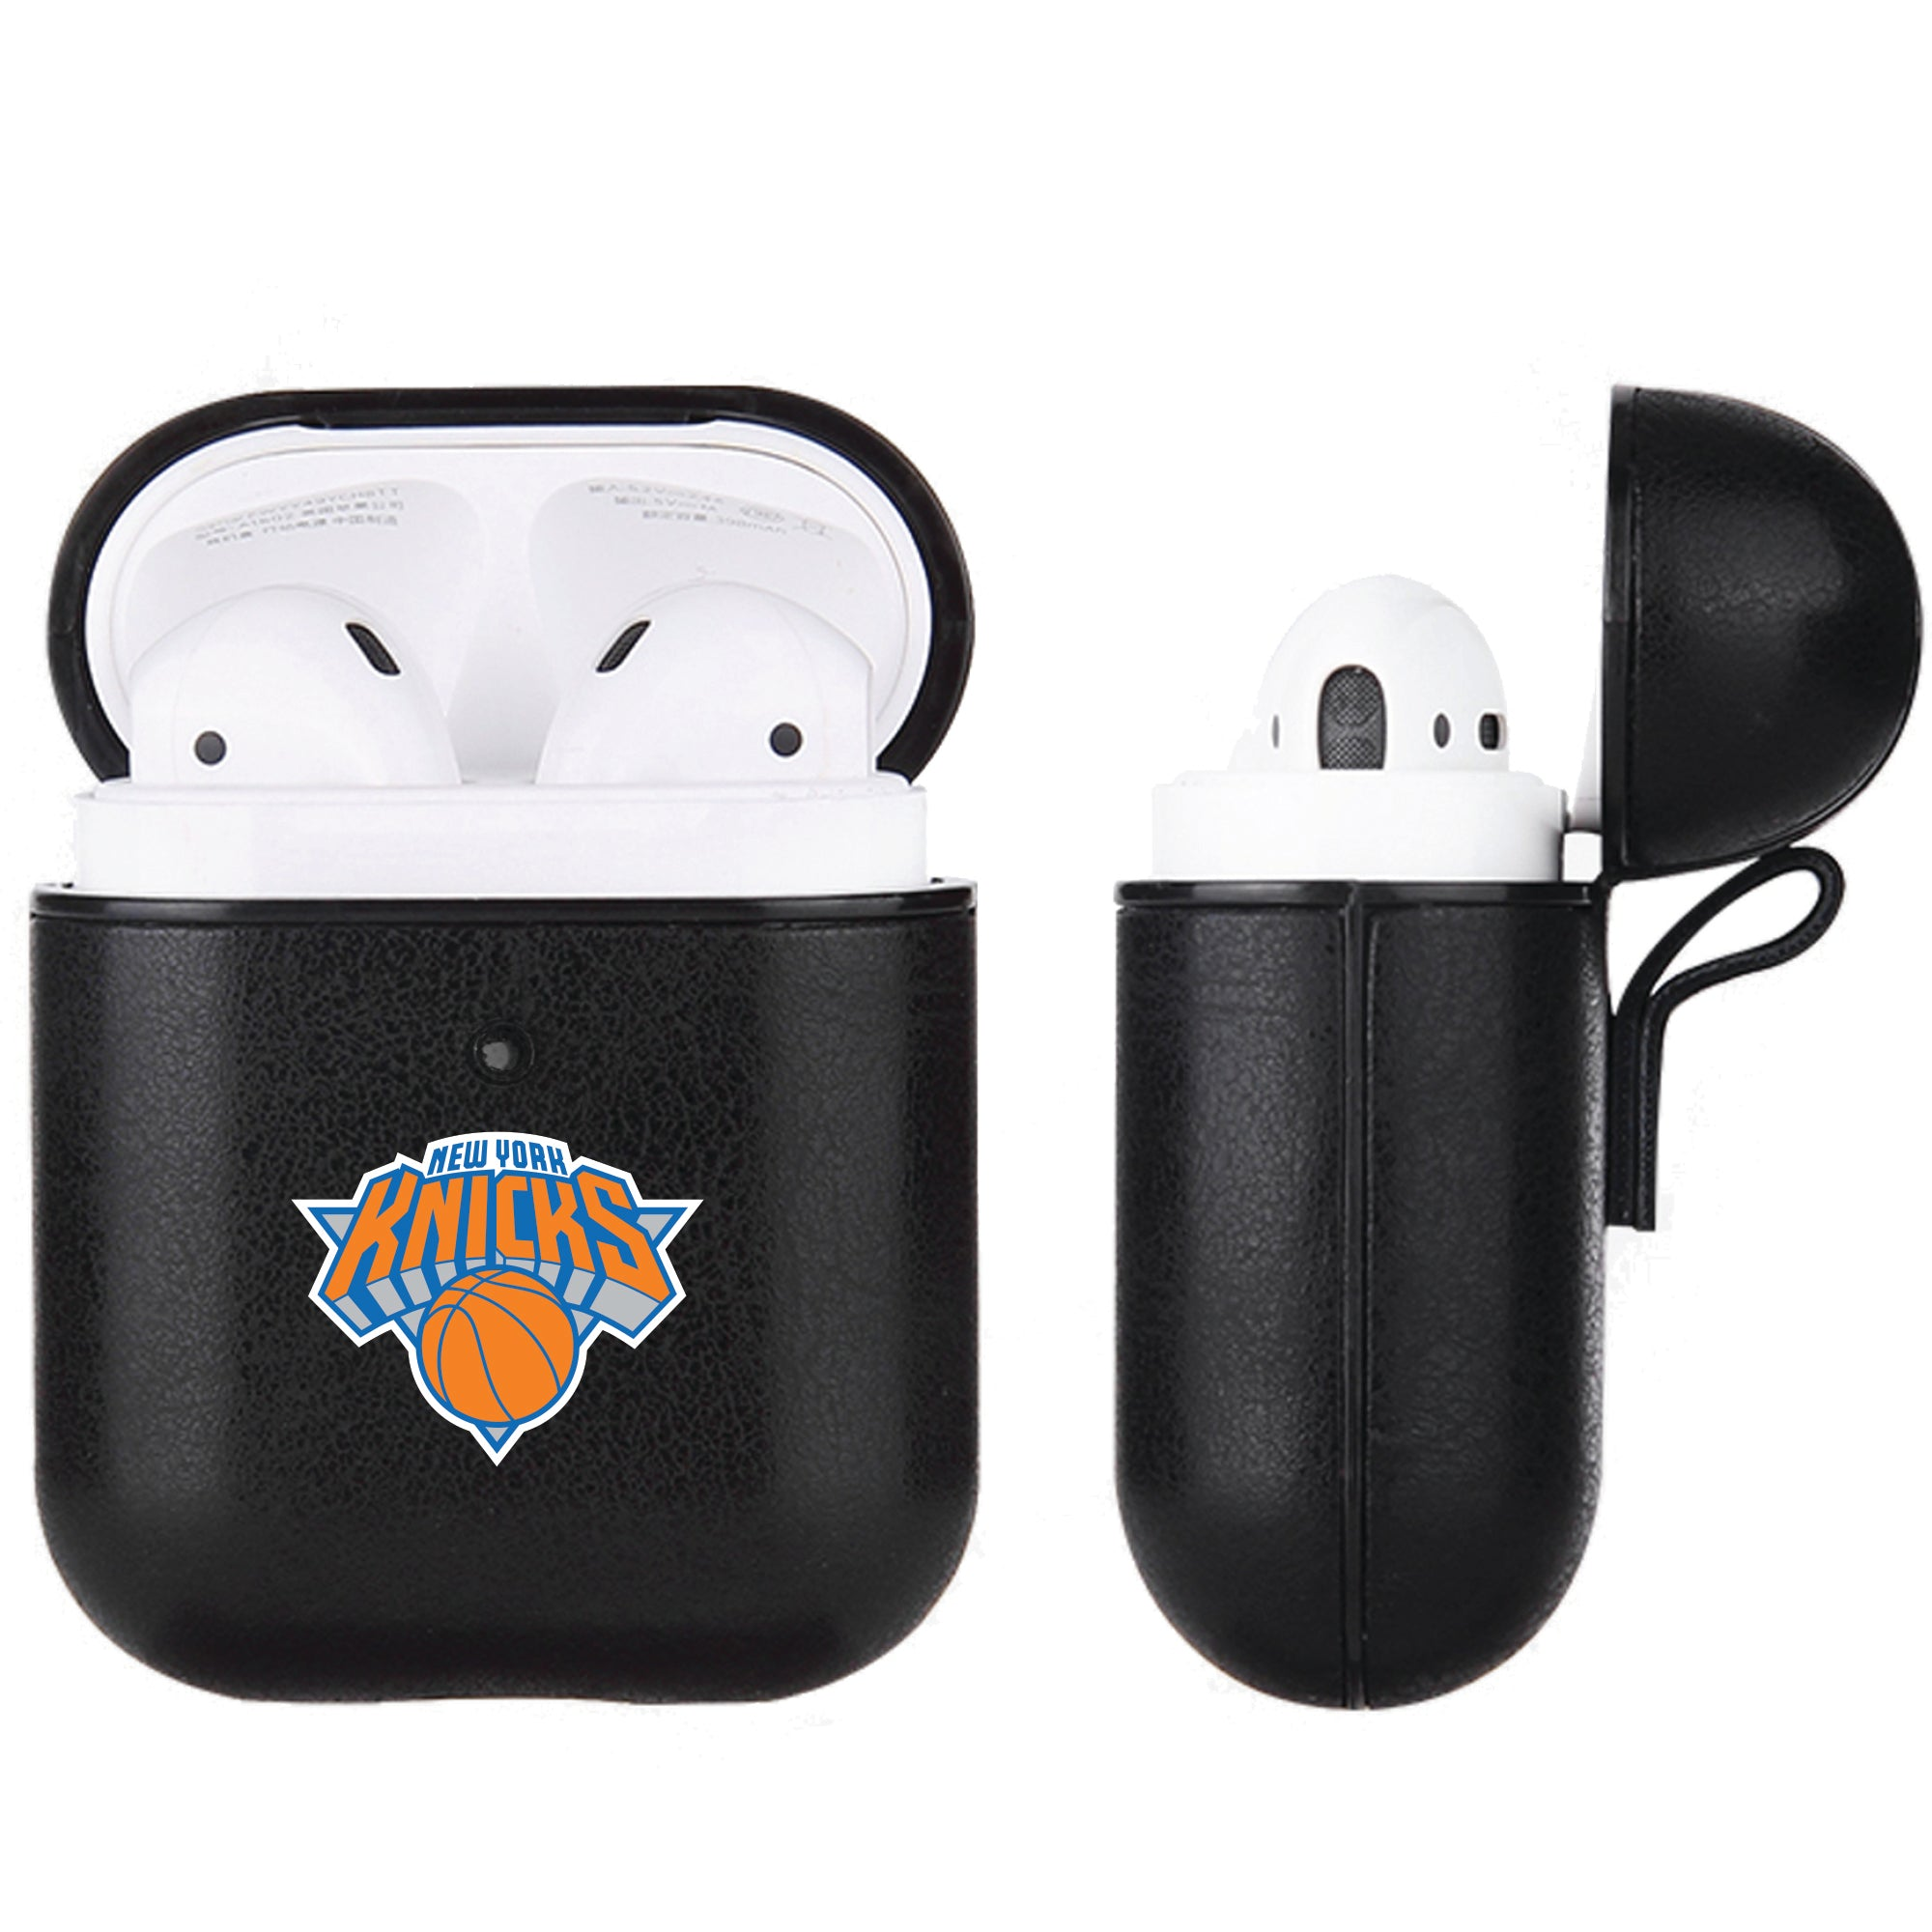 New York Knicks Black Apple Air Pod Leather Case